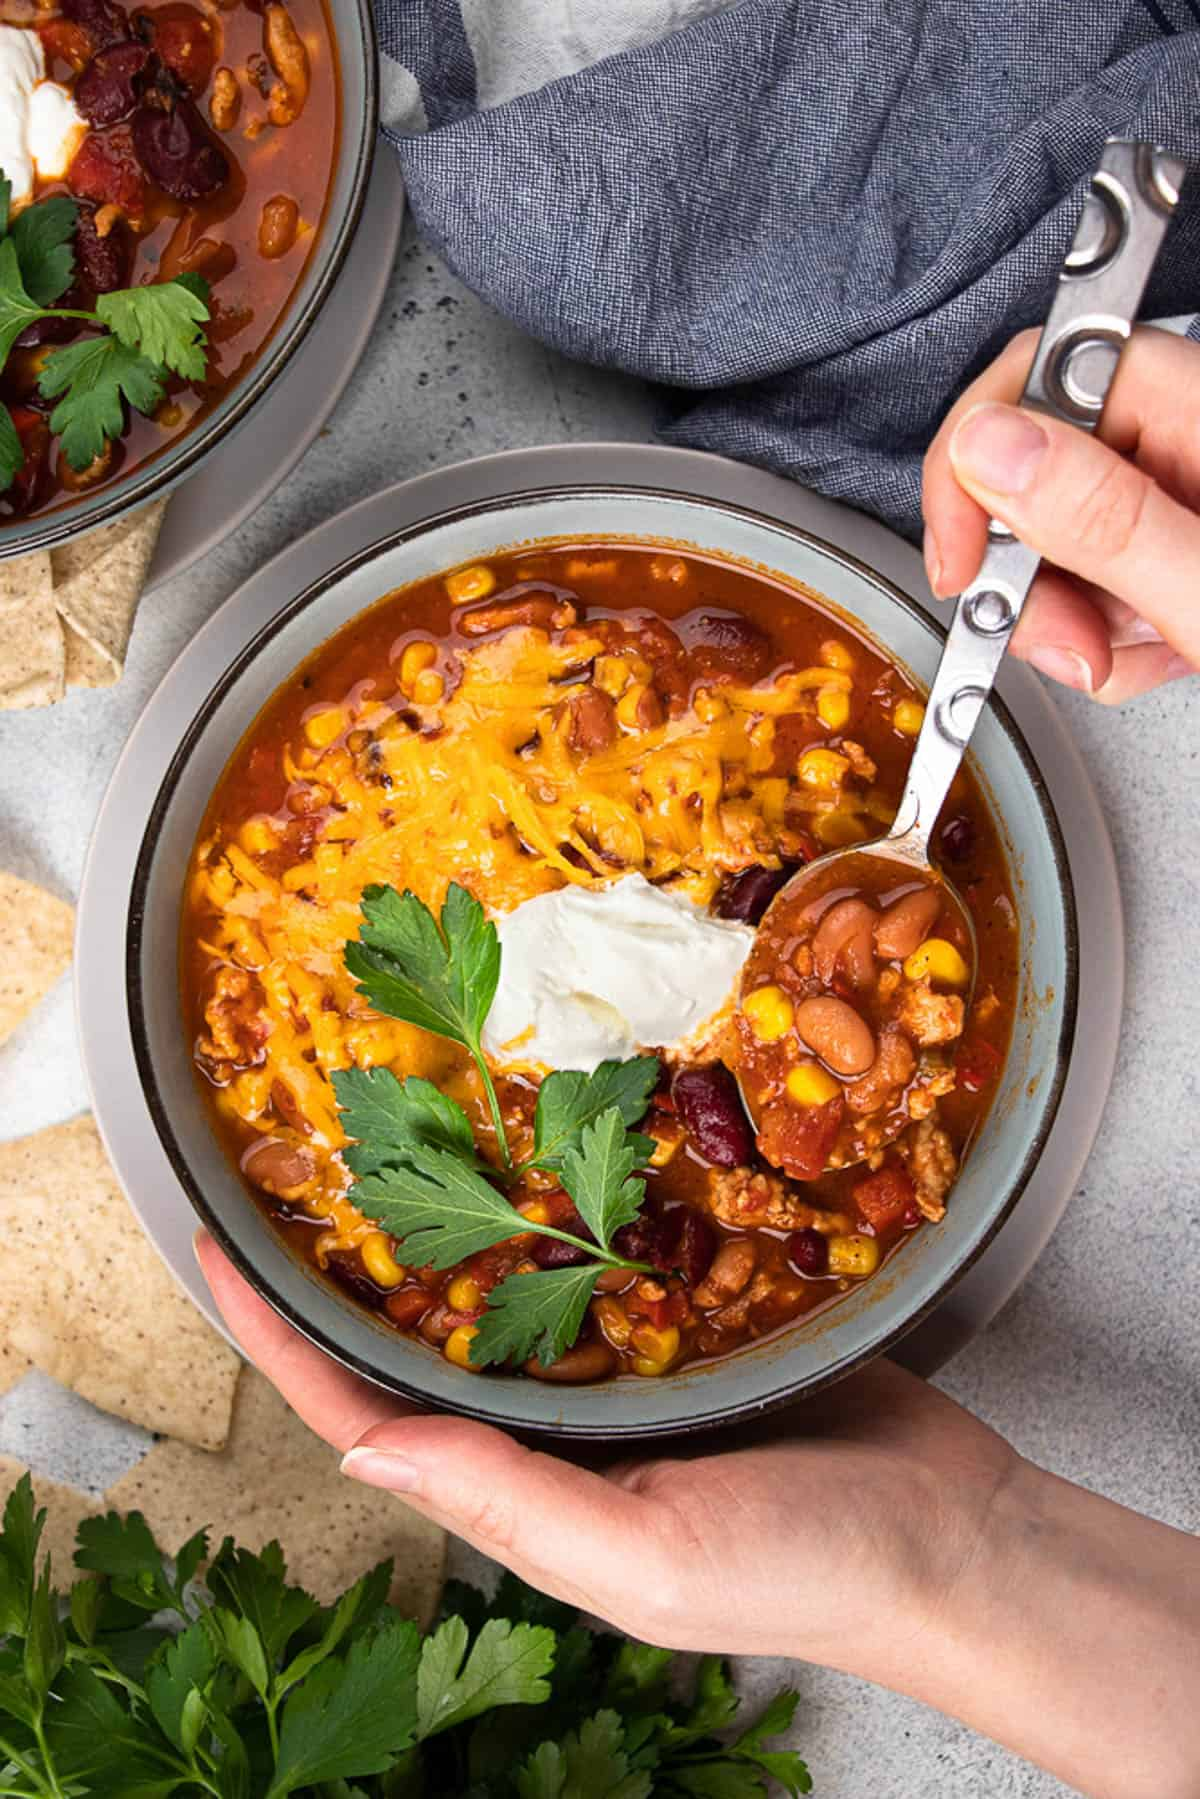 Turkey Chili, topped with sour cream, cheddar cheese, and cilantro in a blue bowl.